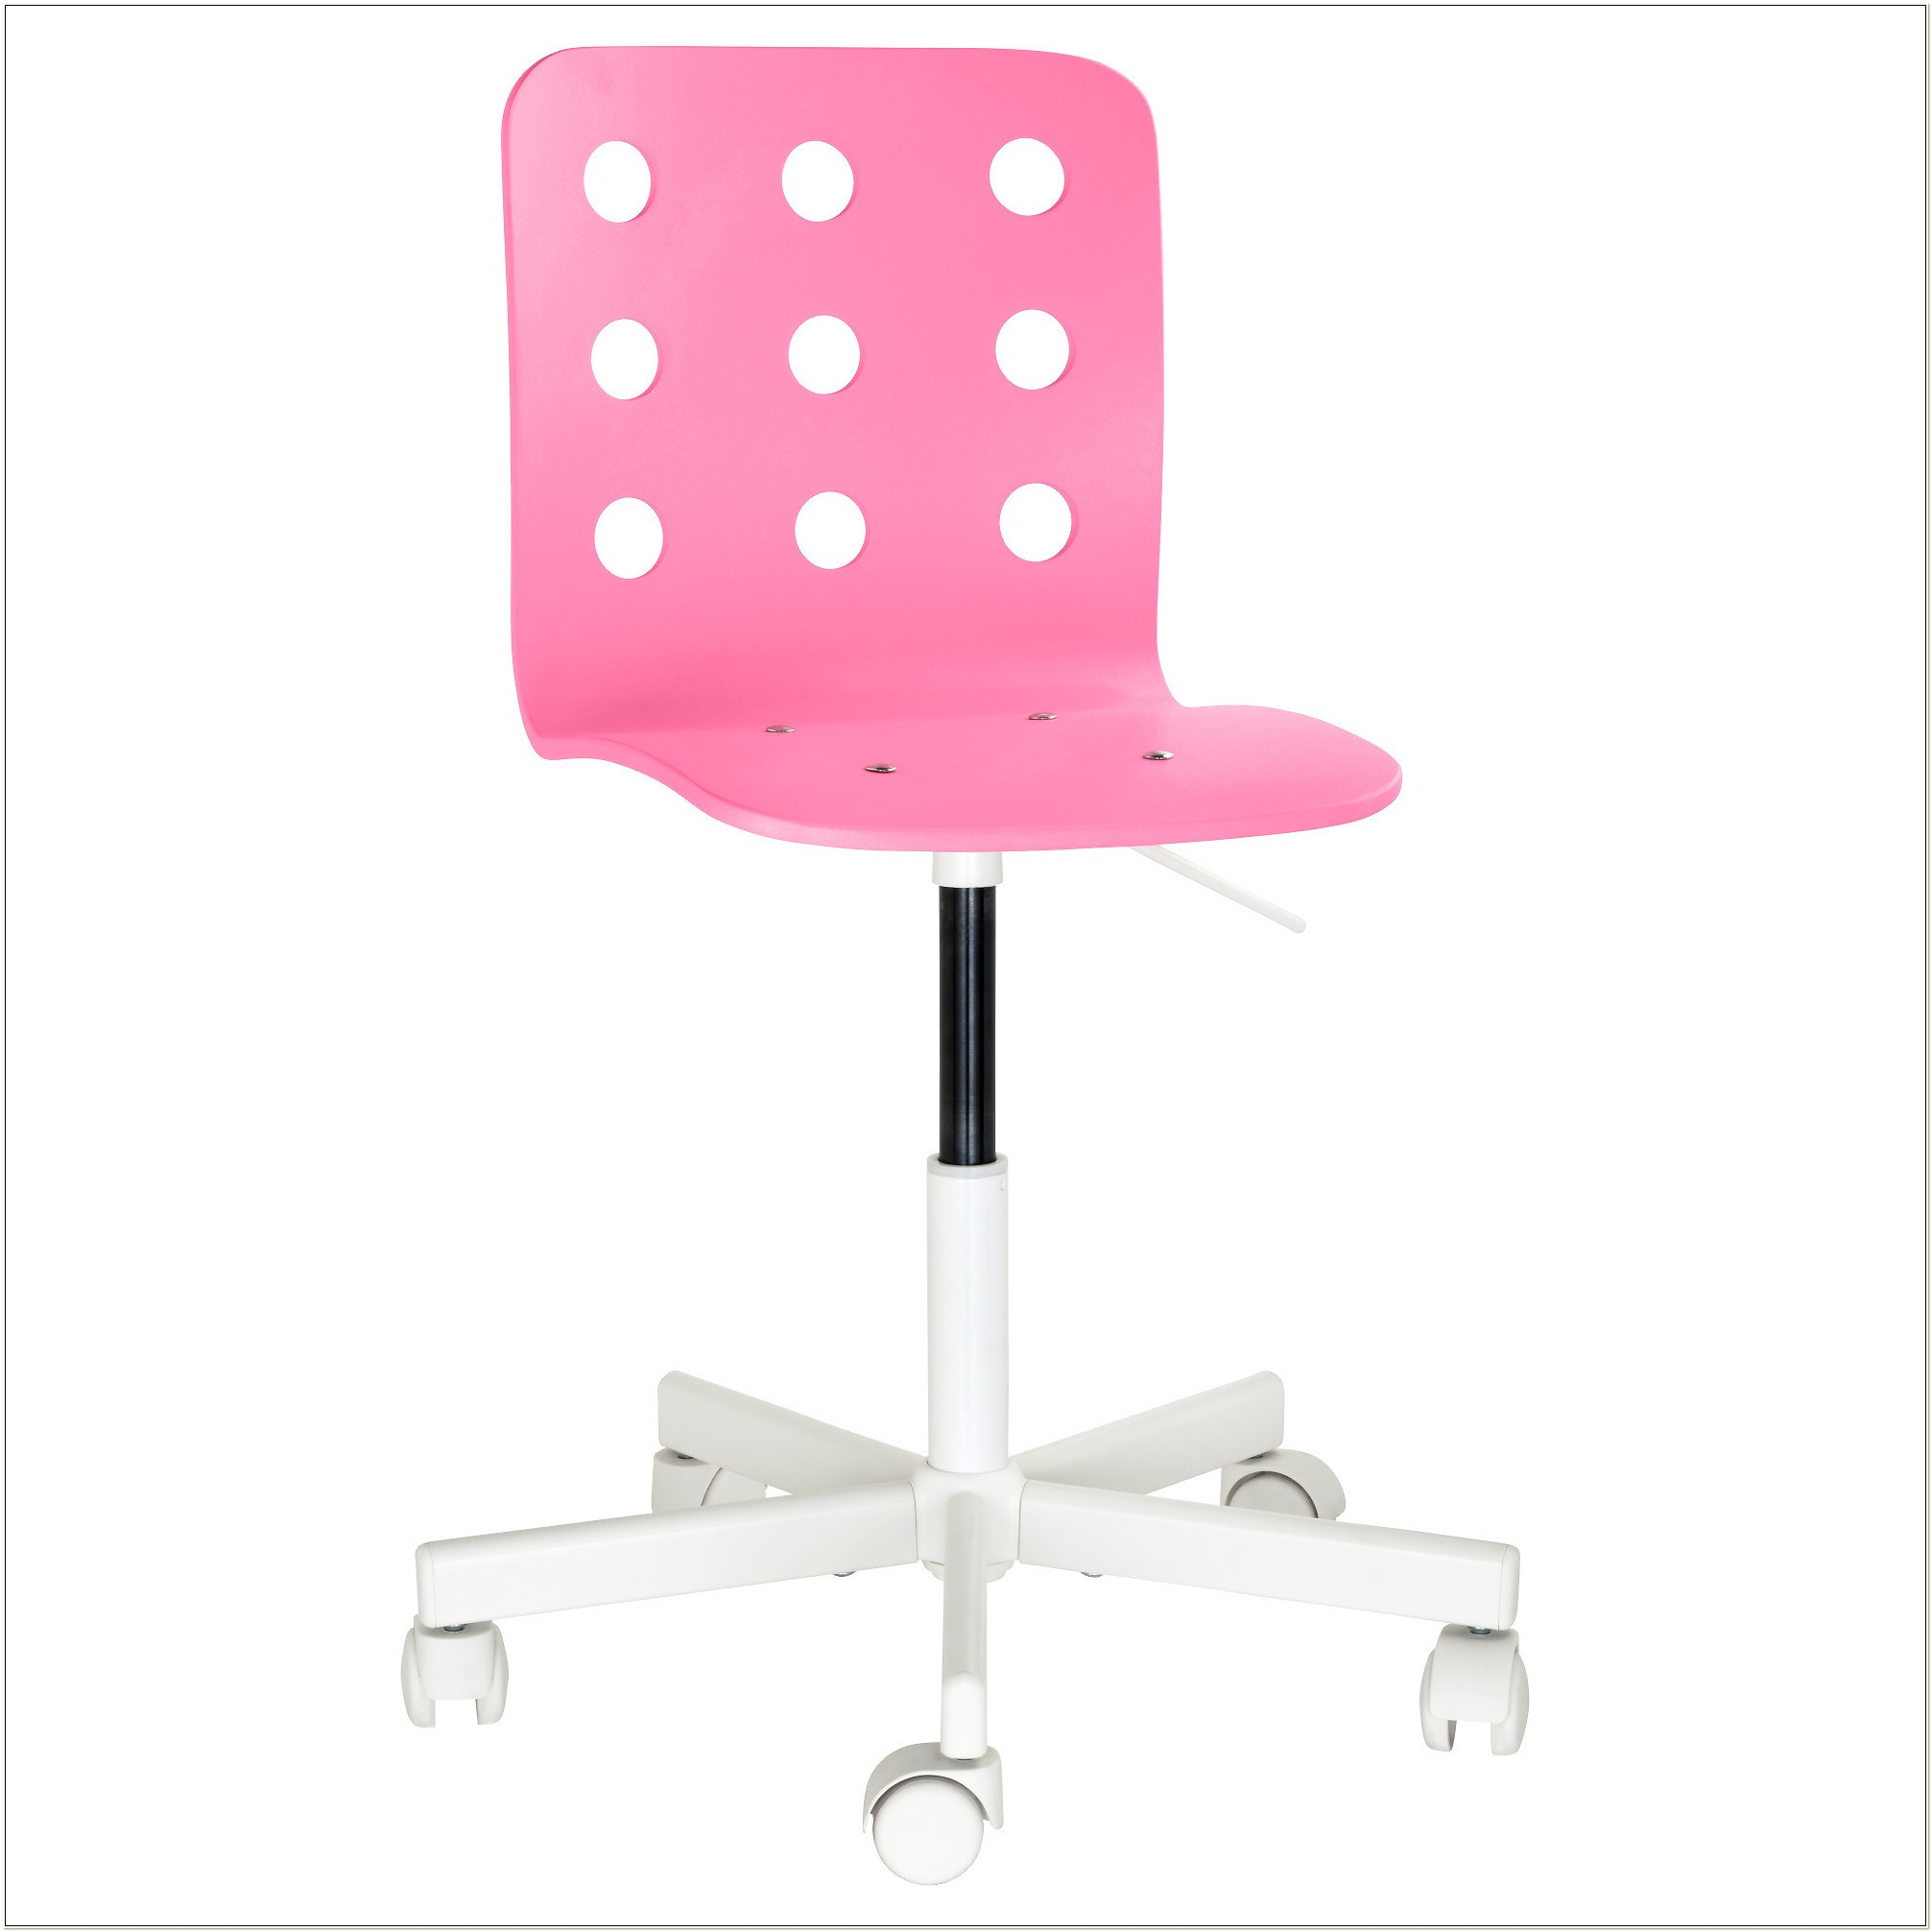 Ikea Pink Desk Chair